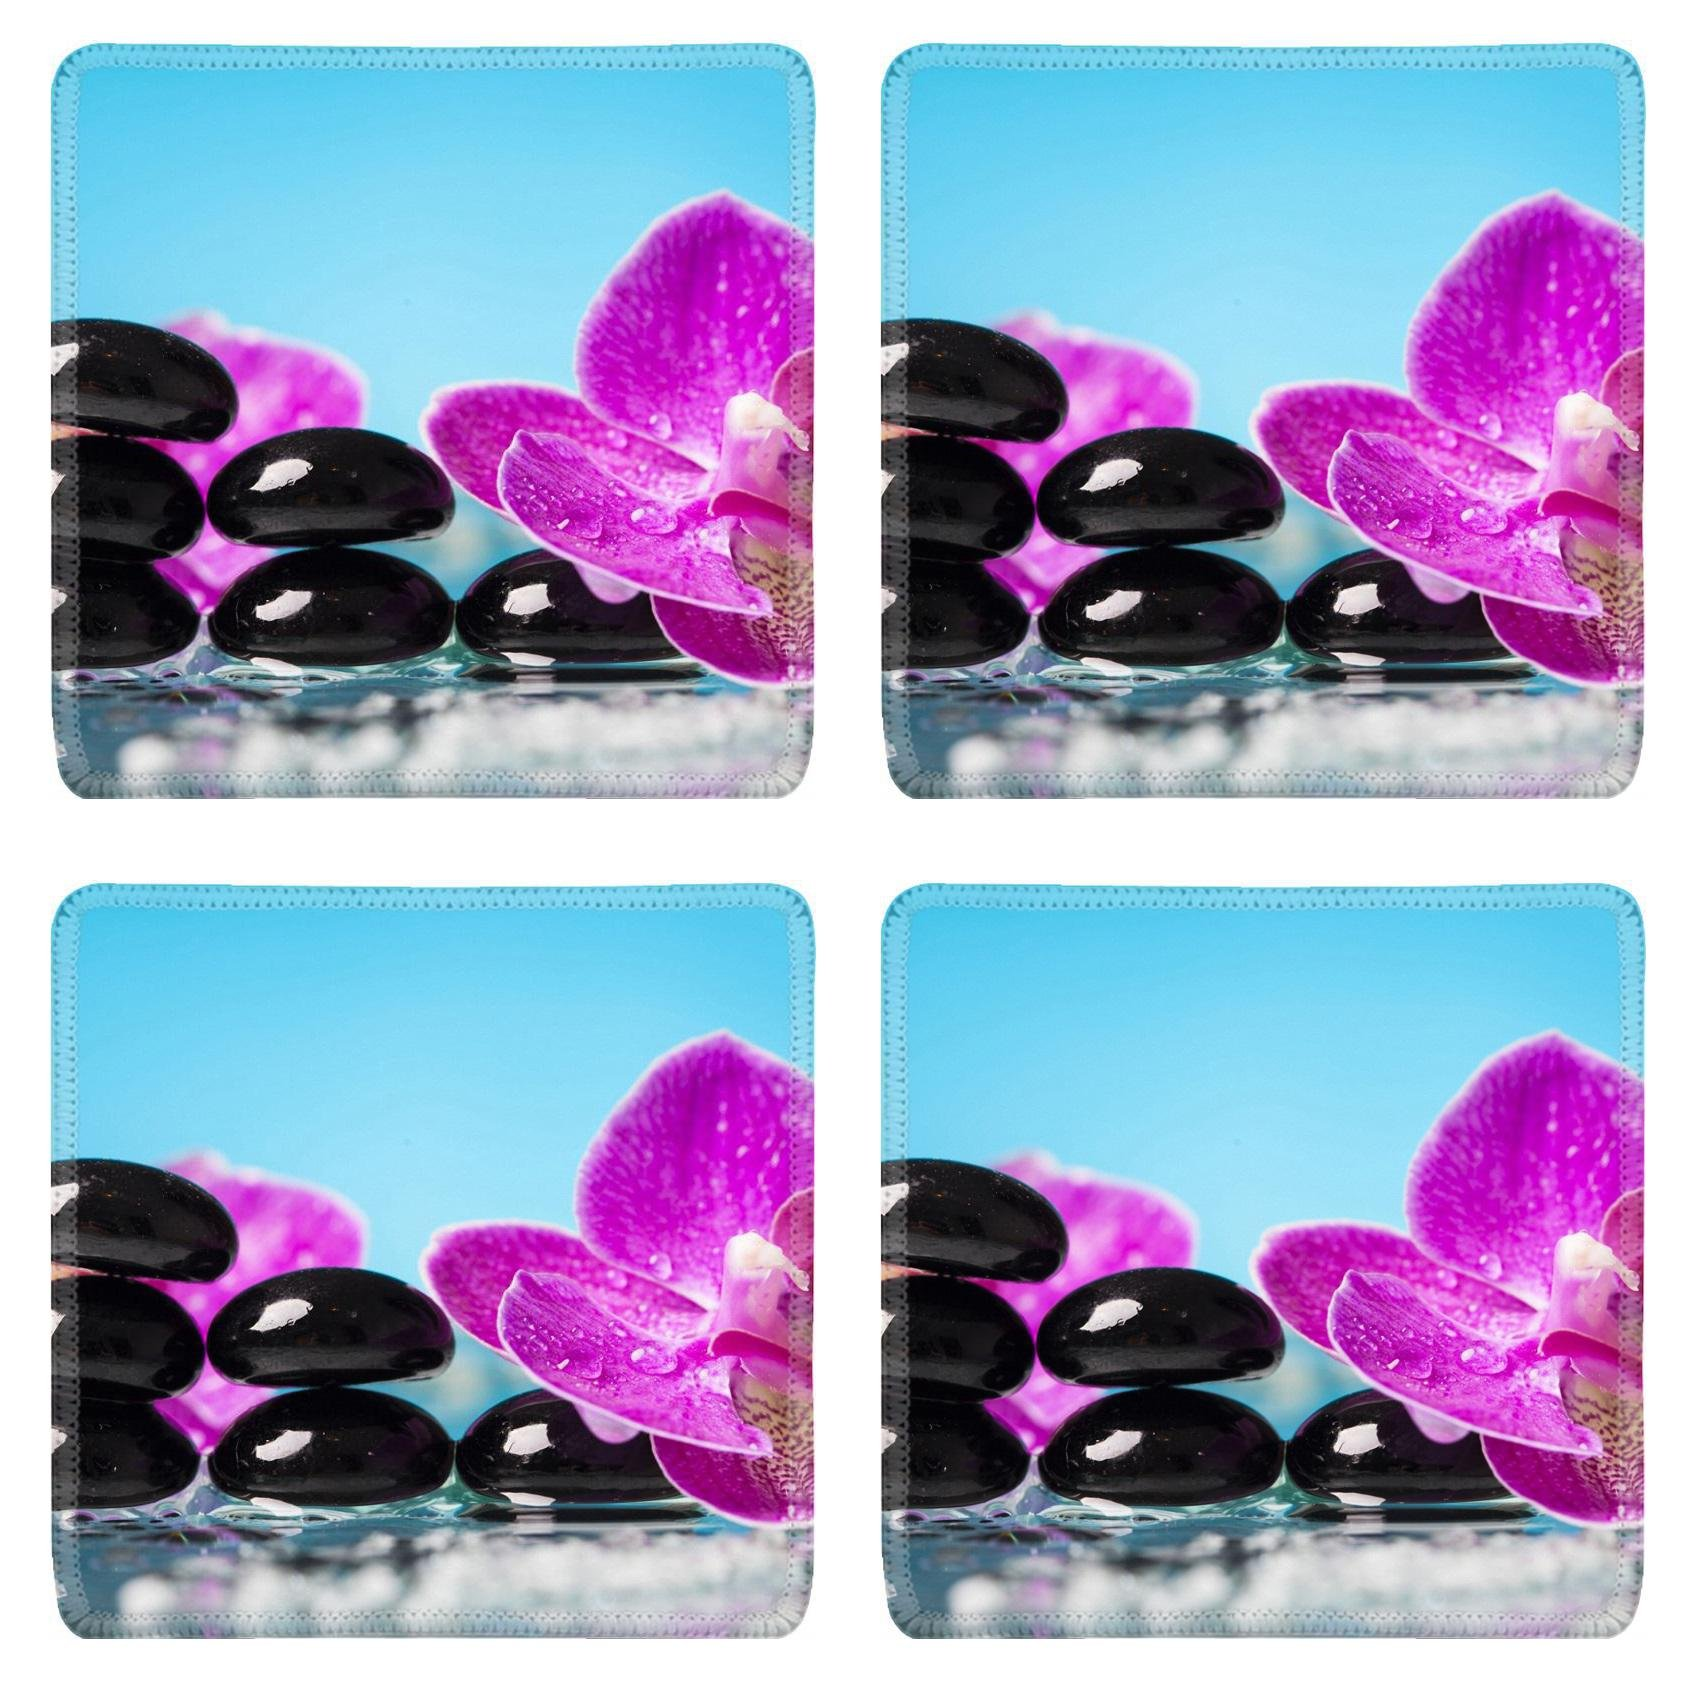 MSD Square Coasters Non-Slip Natural Rubber Desk Coasters design 35818726 Spa still life with pink orchid and black zen stones in a serenity pool